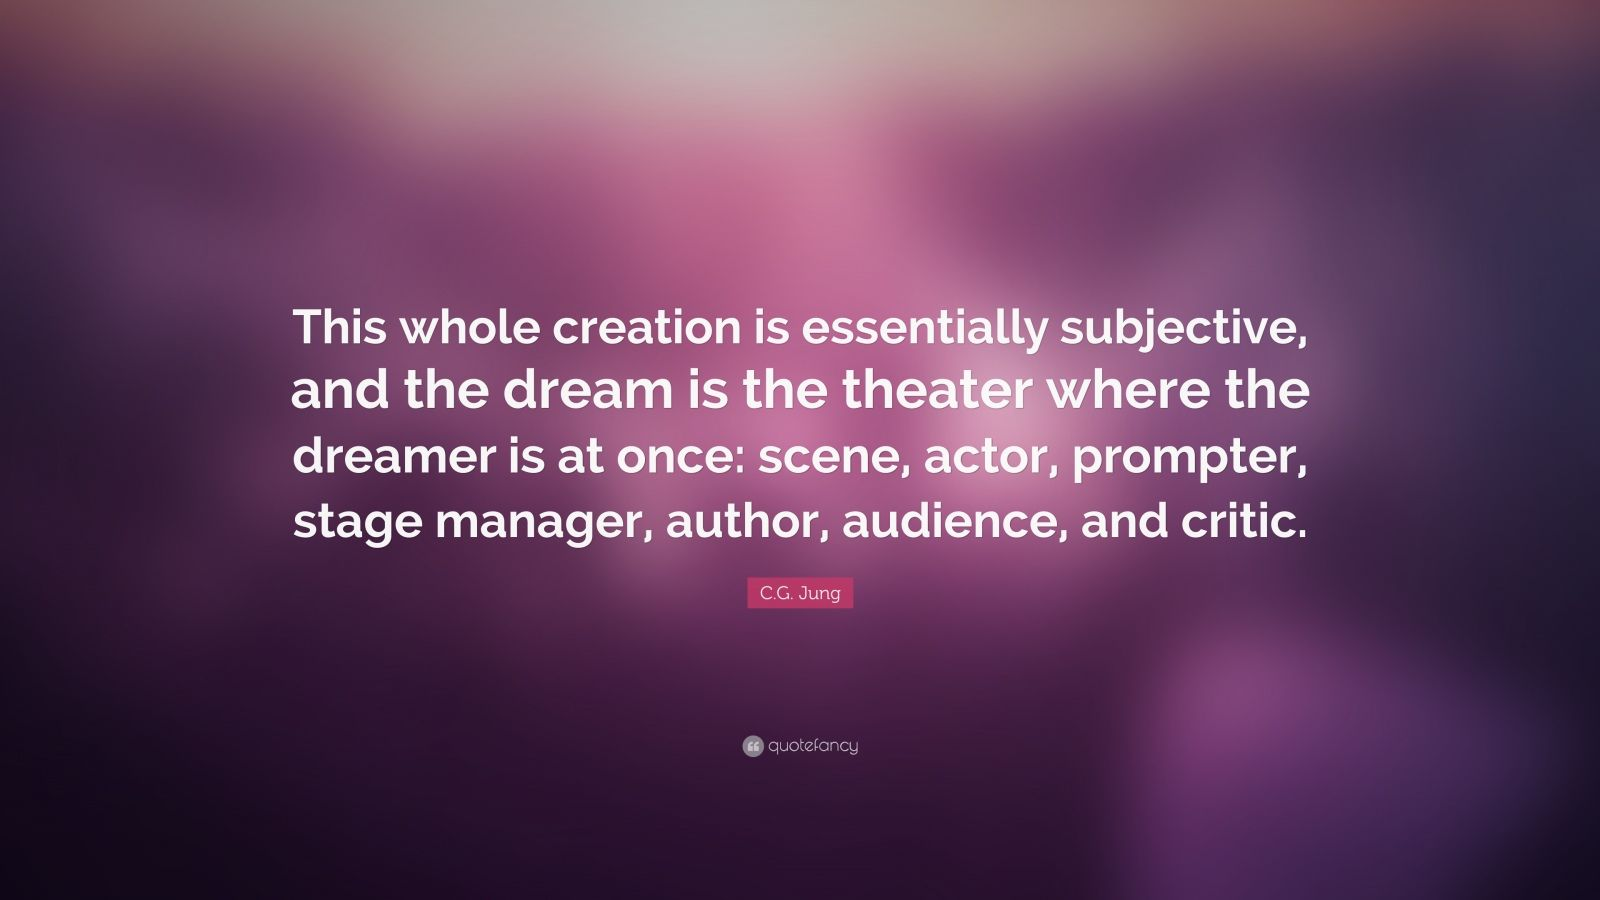 "C.G. Jung Quote: ""This whole creation is essentially subjective, and the dream is the theater where the dreamer is at once: scene, actor, prompter, stage manager, author, audience, and critic."""